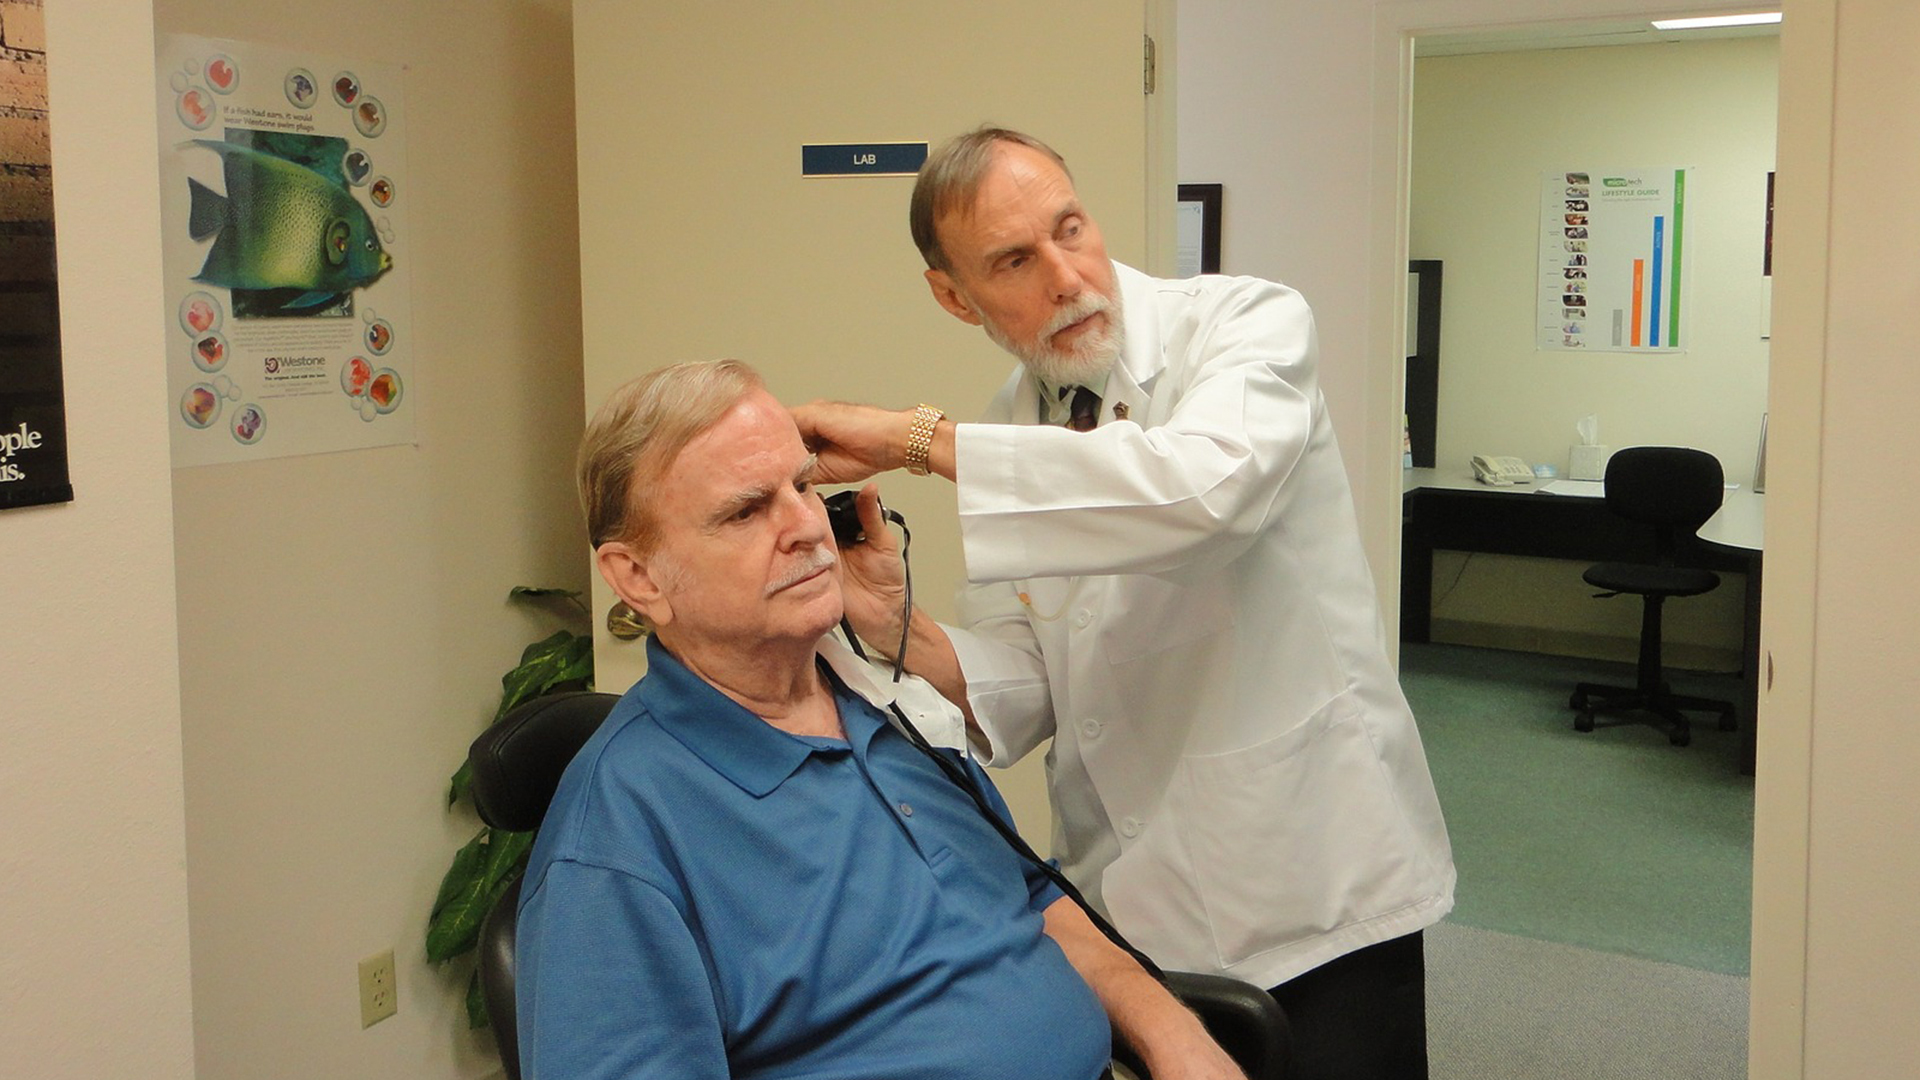 Audiologists and Hearing Instrument Specialists: What You Need to Know